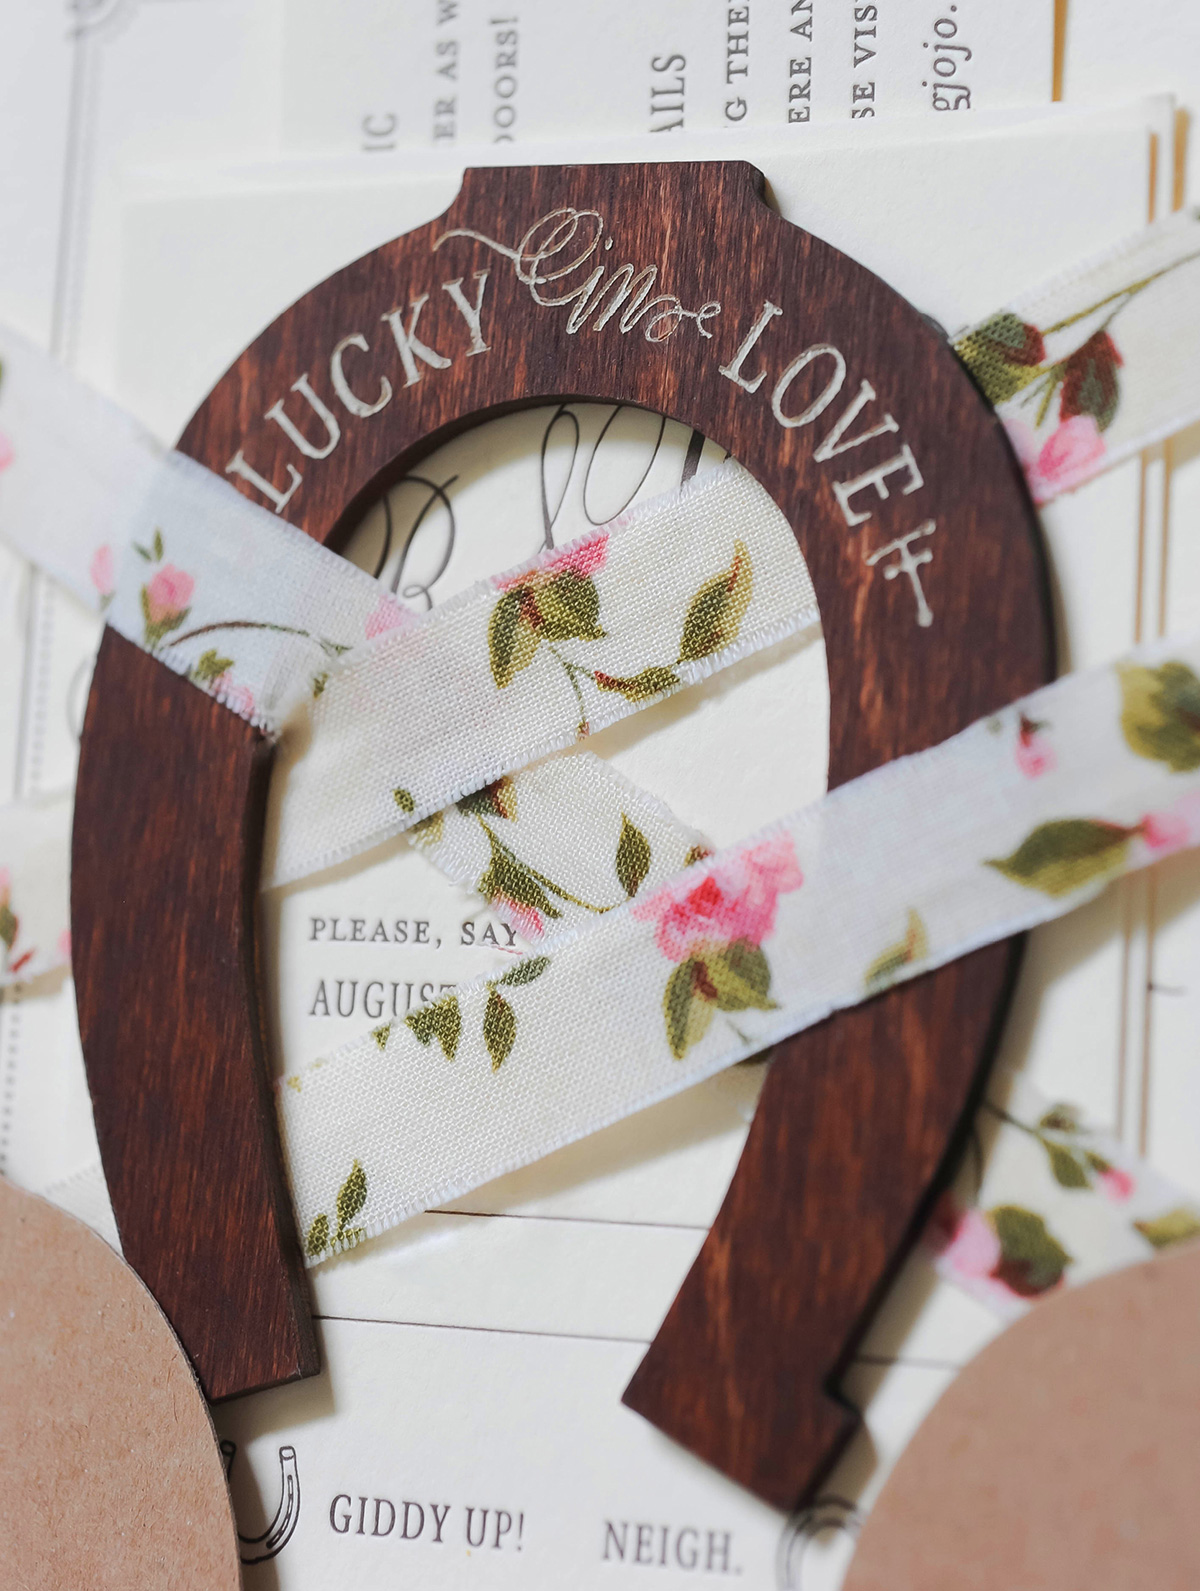 Engraved wooden horseshoe wedding invitation